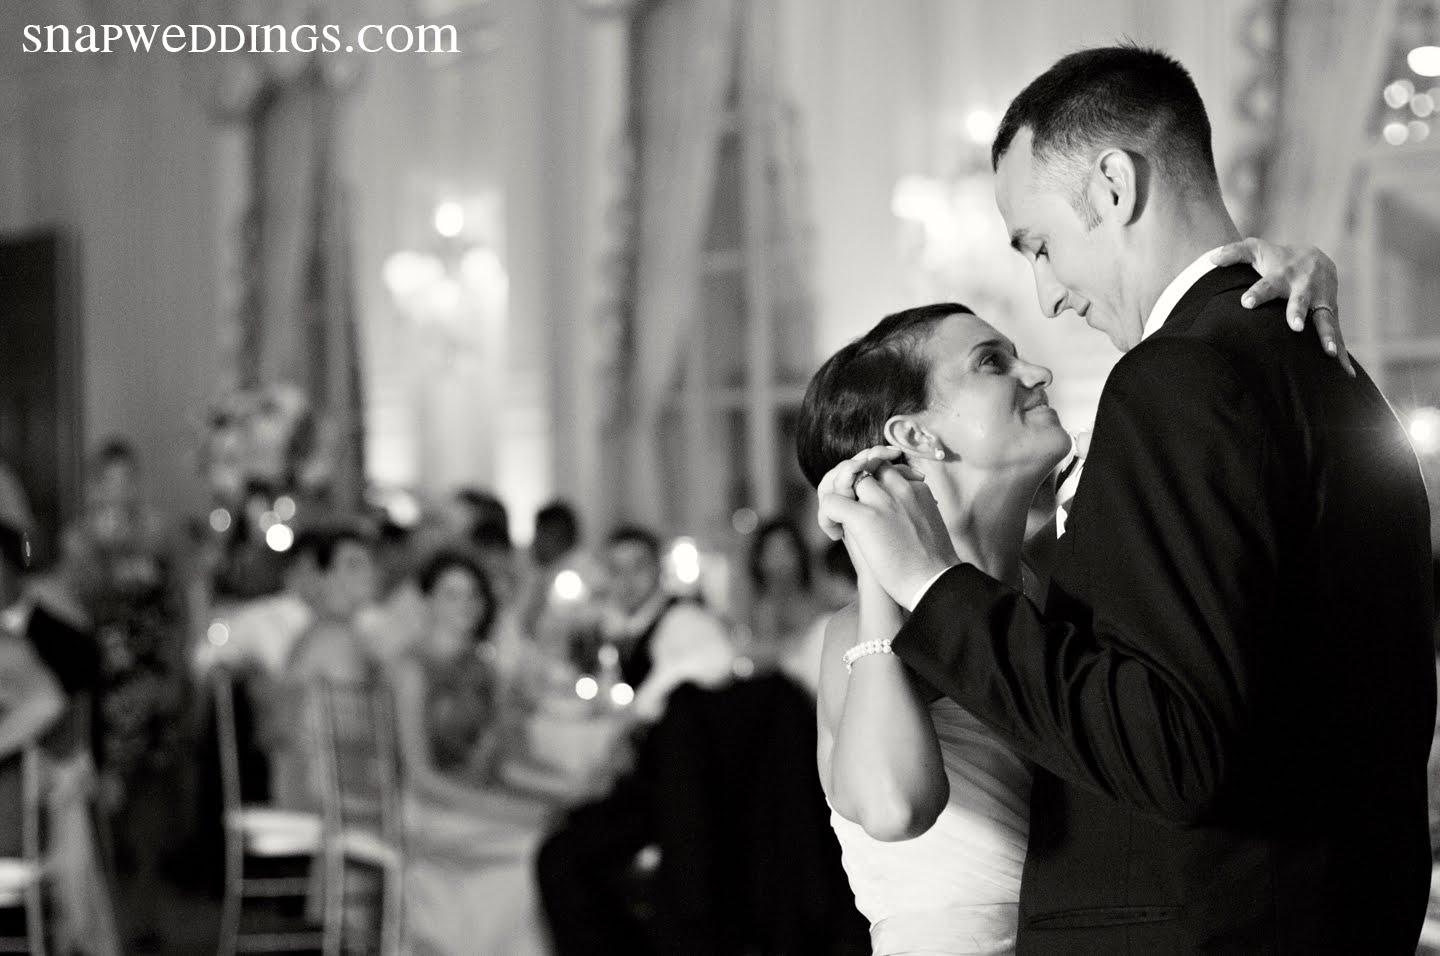 (07ー20)  tvn.hu nude imagesize:1440x956 cookinuppoliticswithsheila: Jillian + Kevin at Rosecliff Mansion, Part Two  / Newport Wedding Photographer